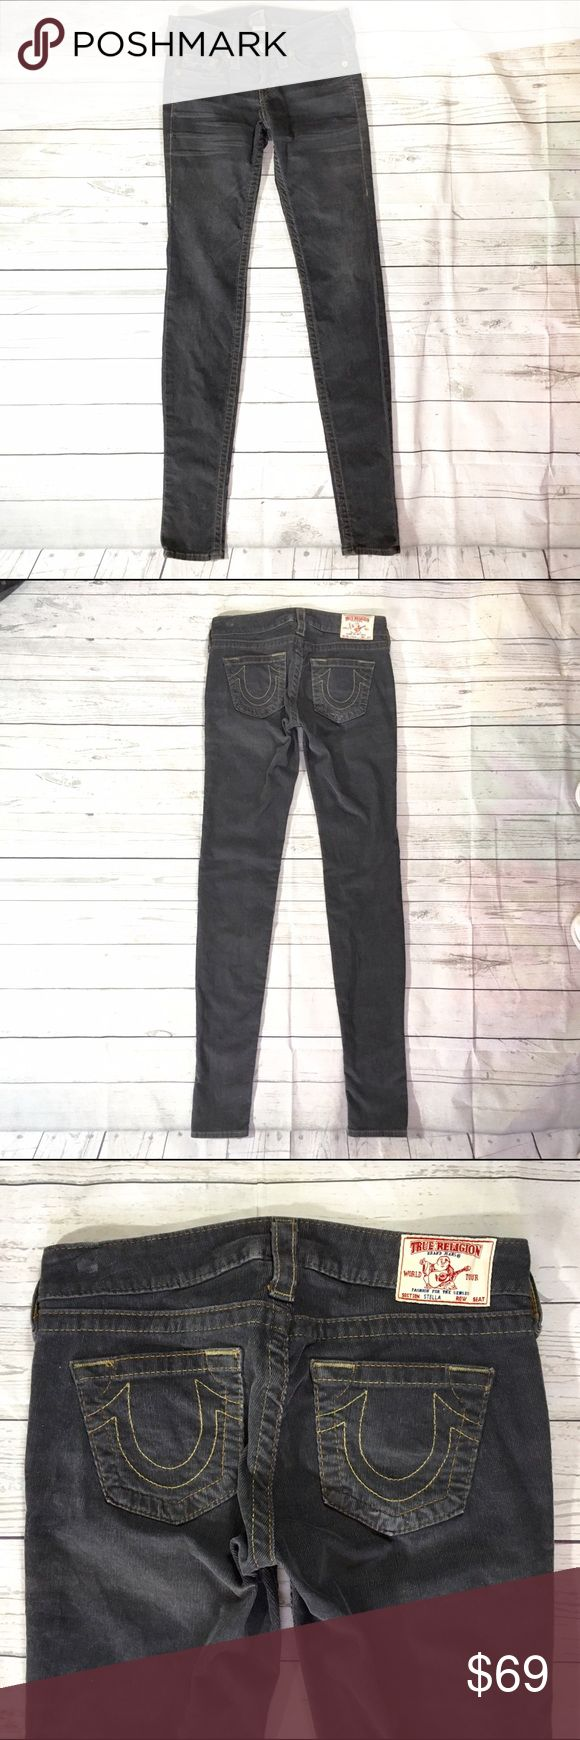 "True religion women's skinny pants sz 26 True religion women's skinny corduroys sz 26 gray low rise. 100% authentic. Embroidered pockets Color: graphite gray  Measurements:     - waist 14.5""    - Rise 7""    - inseam 34"" True Religion Jeans Skinny"